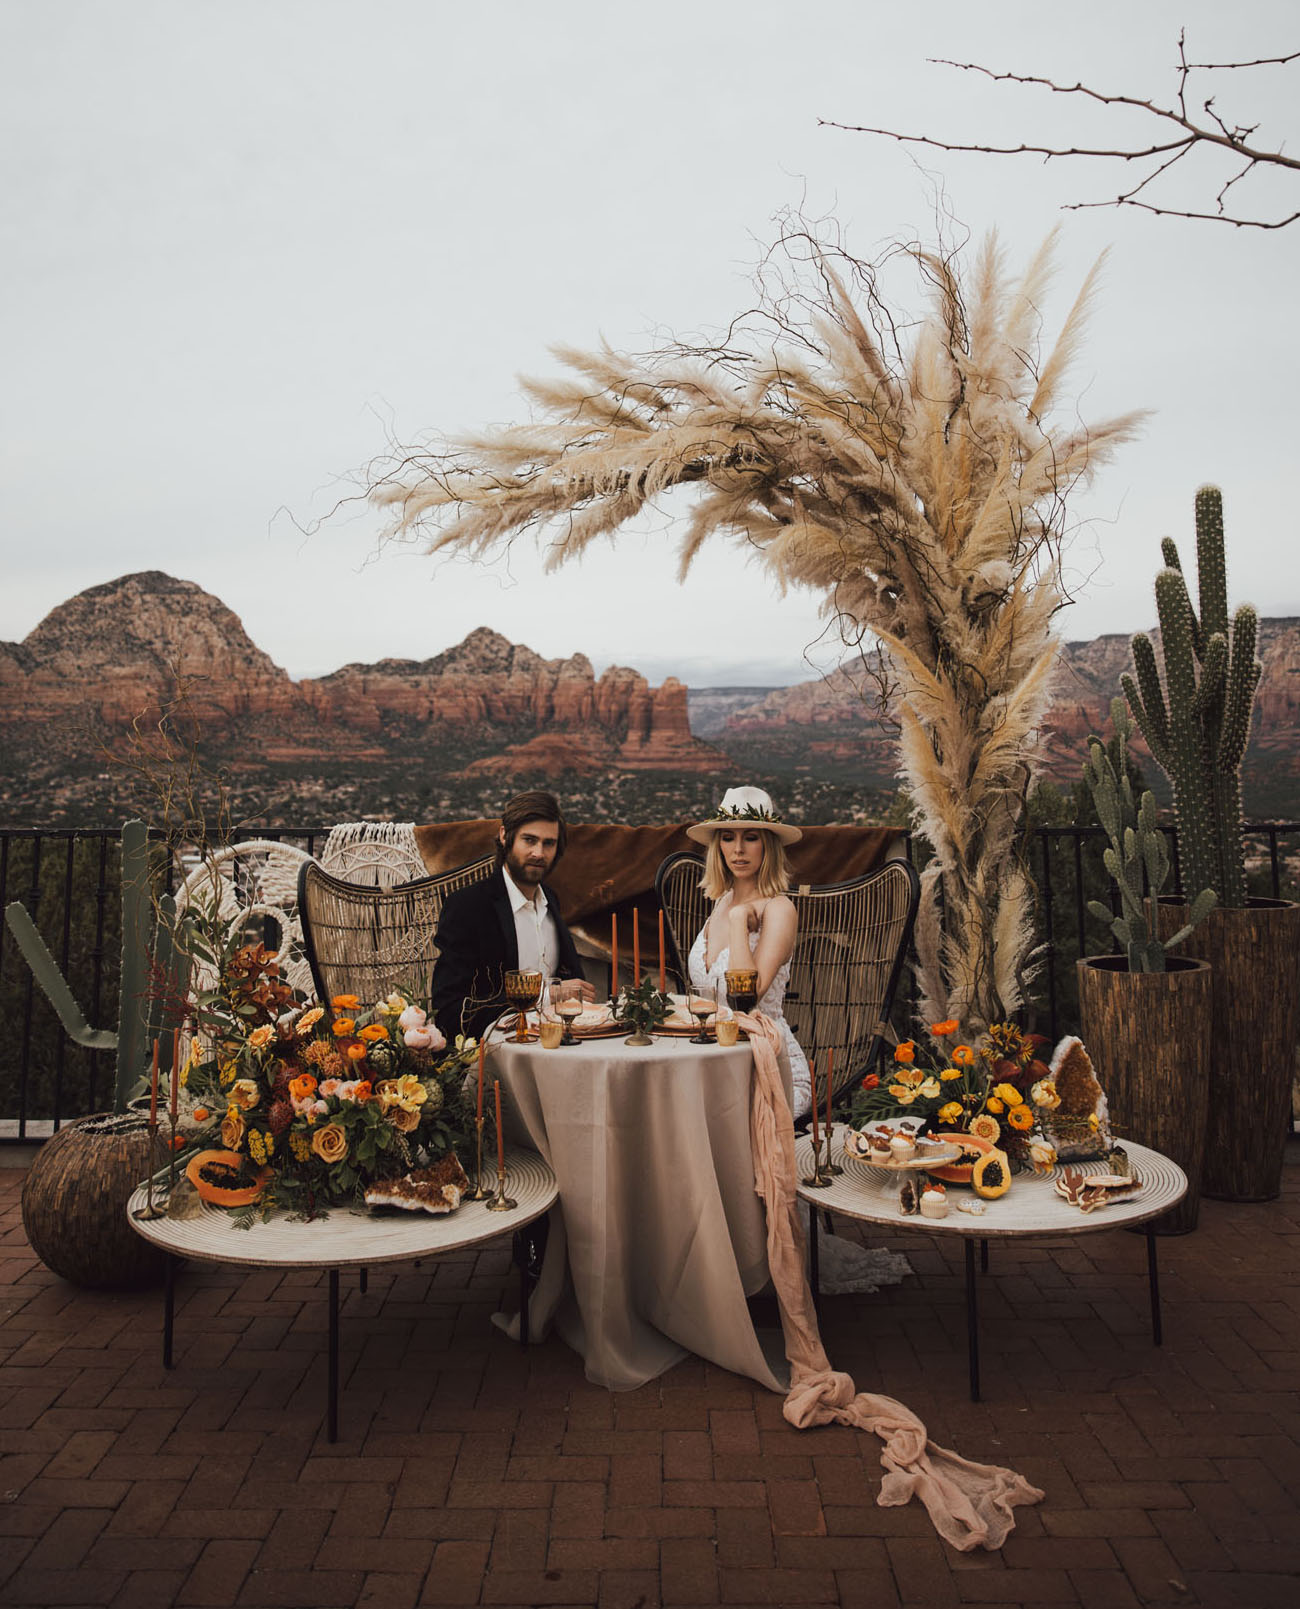 Smoky Citrine Crystals in this Sedona Wedding Inspiration